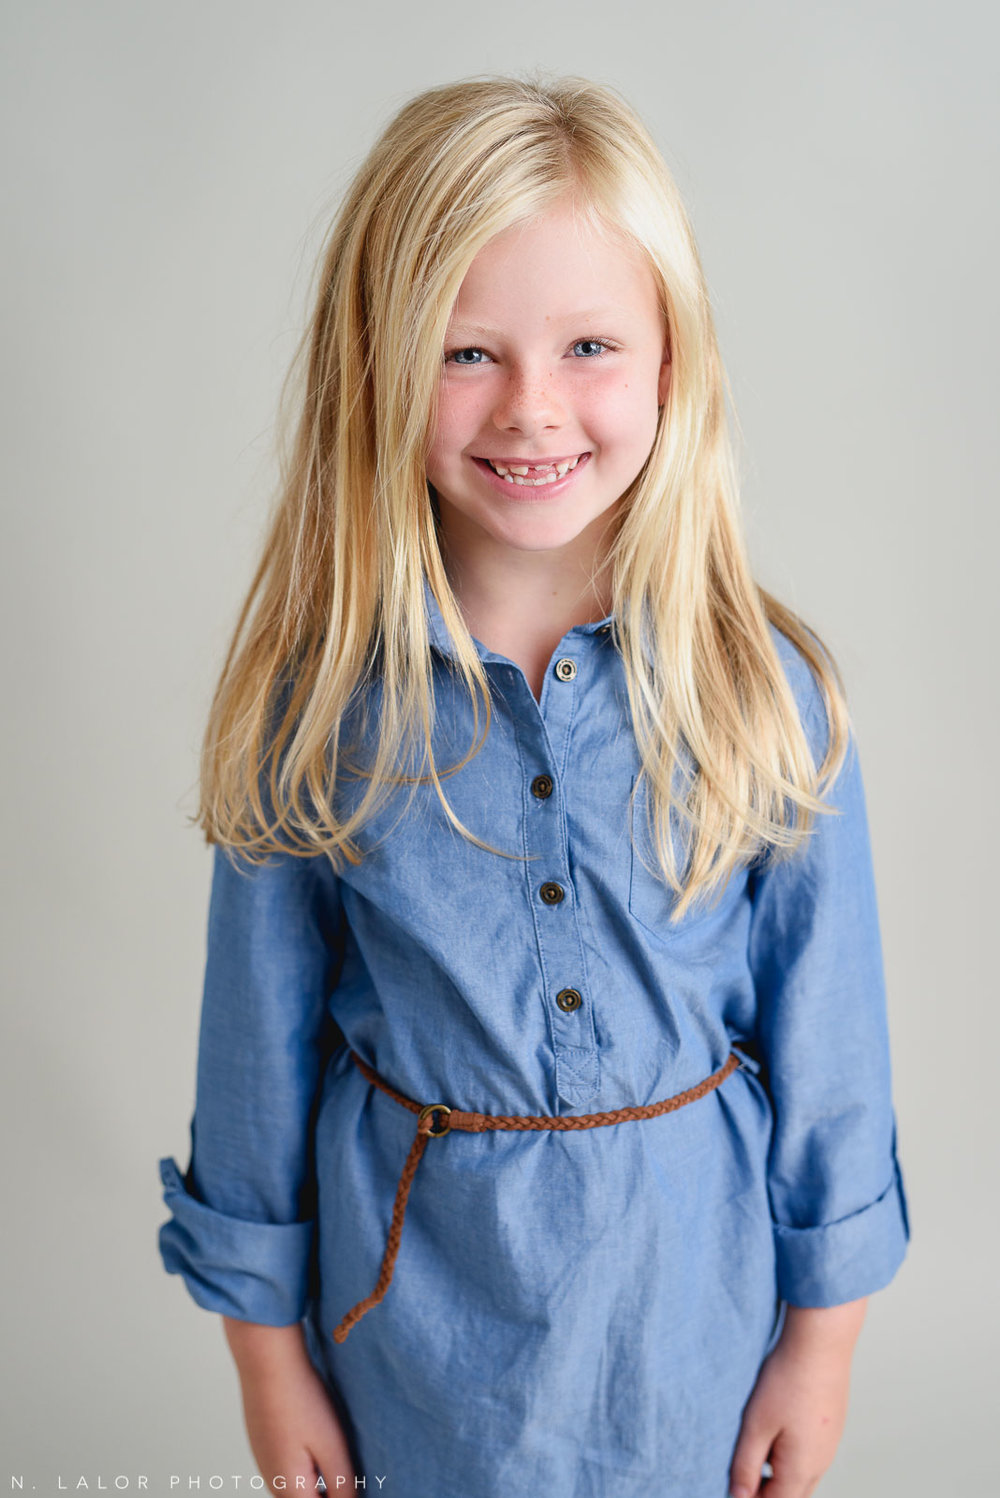 Looking so grown up. Studio photoshoot with N. Lalor Photography in Greenwich, Connecticut.